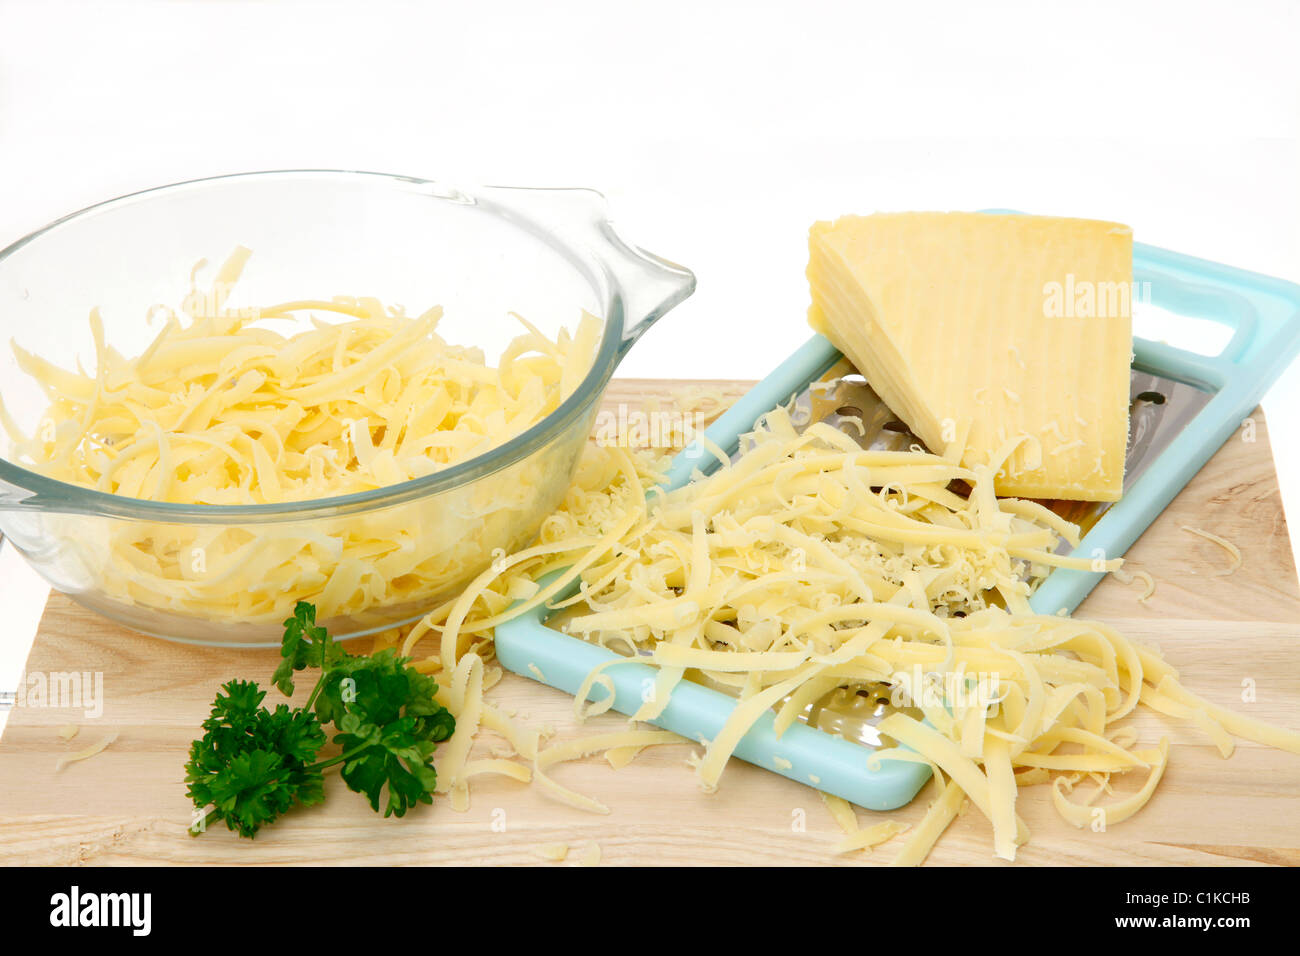 Grated cheese on a wooden cutting board - high key image - Stock Image